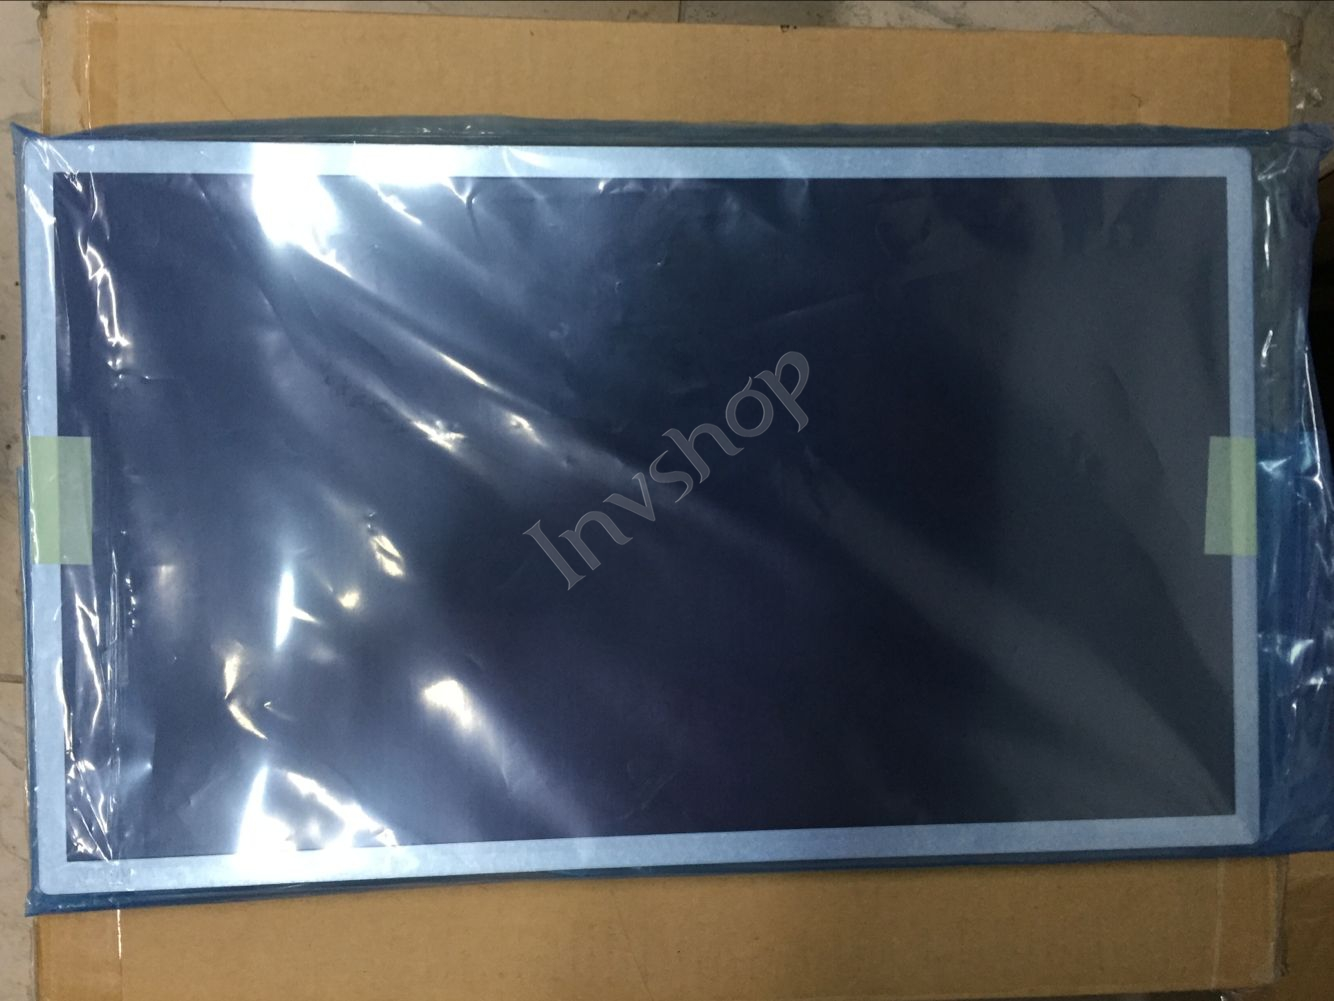 G185HAN01.0 AUO 18.5 inch 1920*1080 display new and original